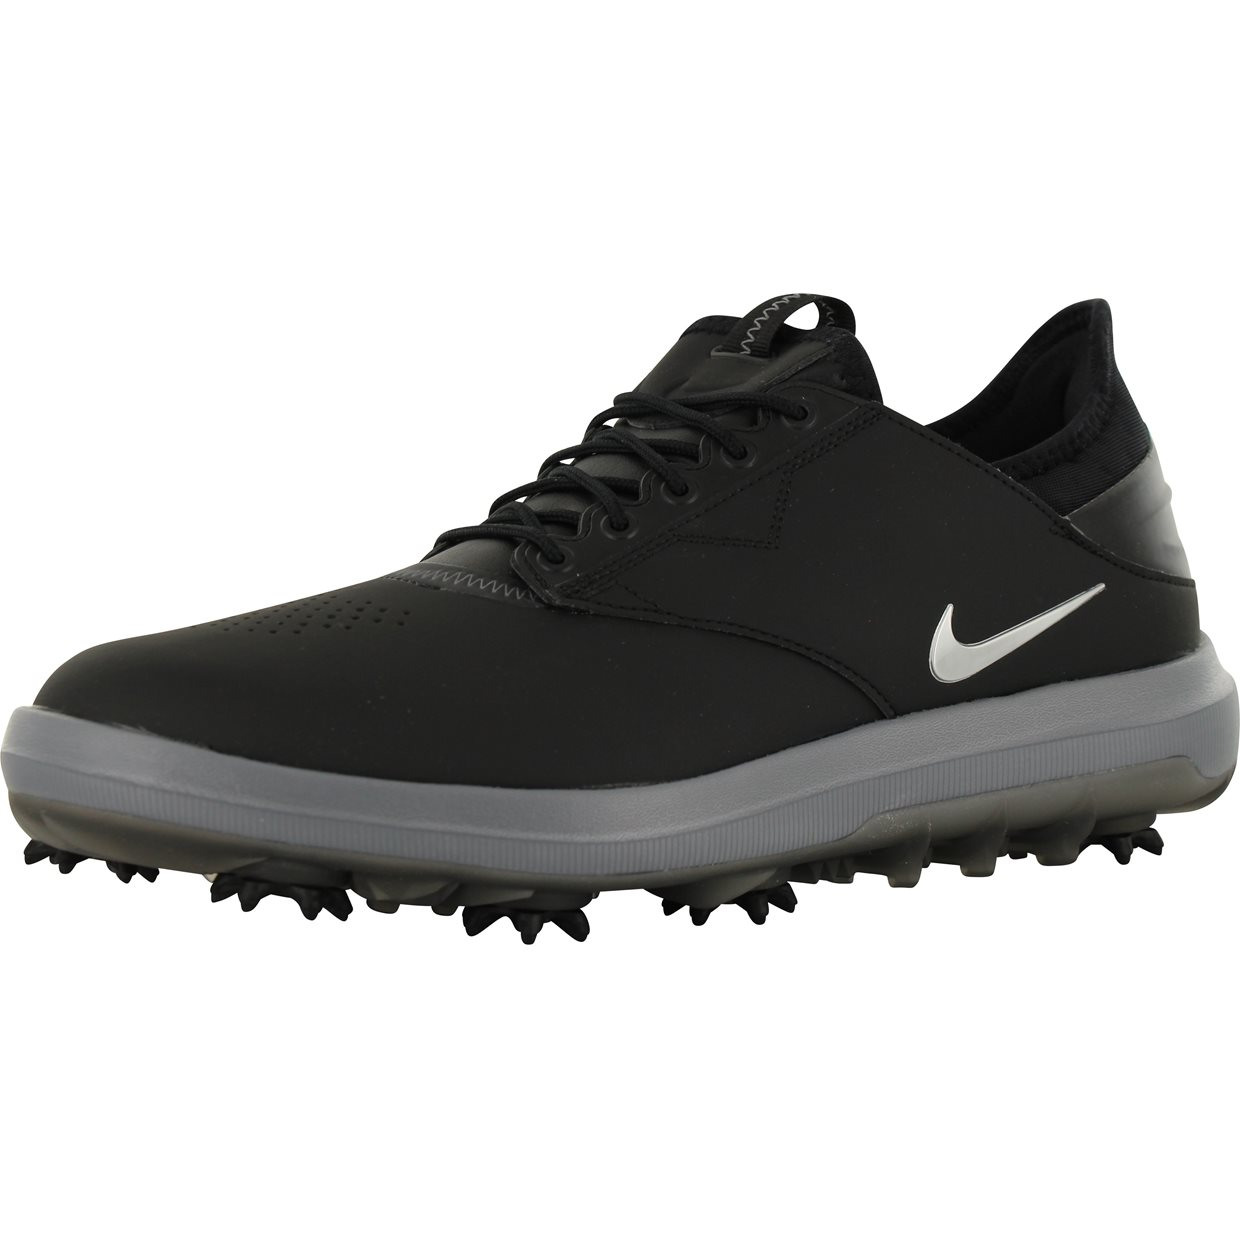 Nike Air Zoom Direct Golf Shoes Black Metallic Silver New Size 10.5 [923965-001]